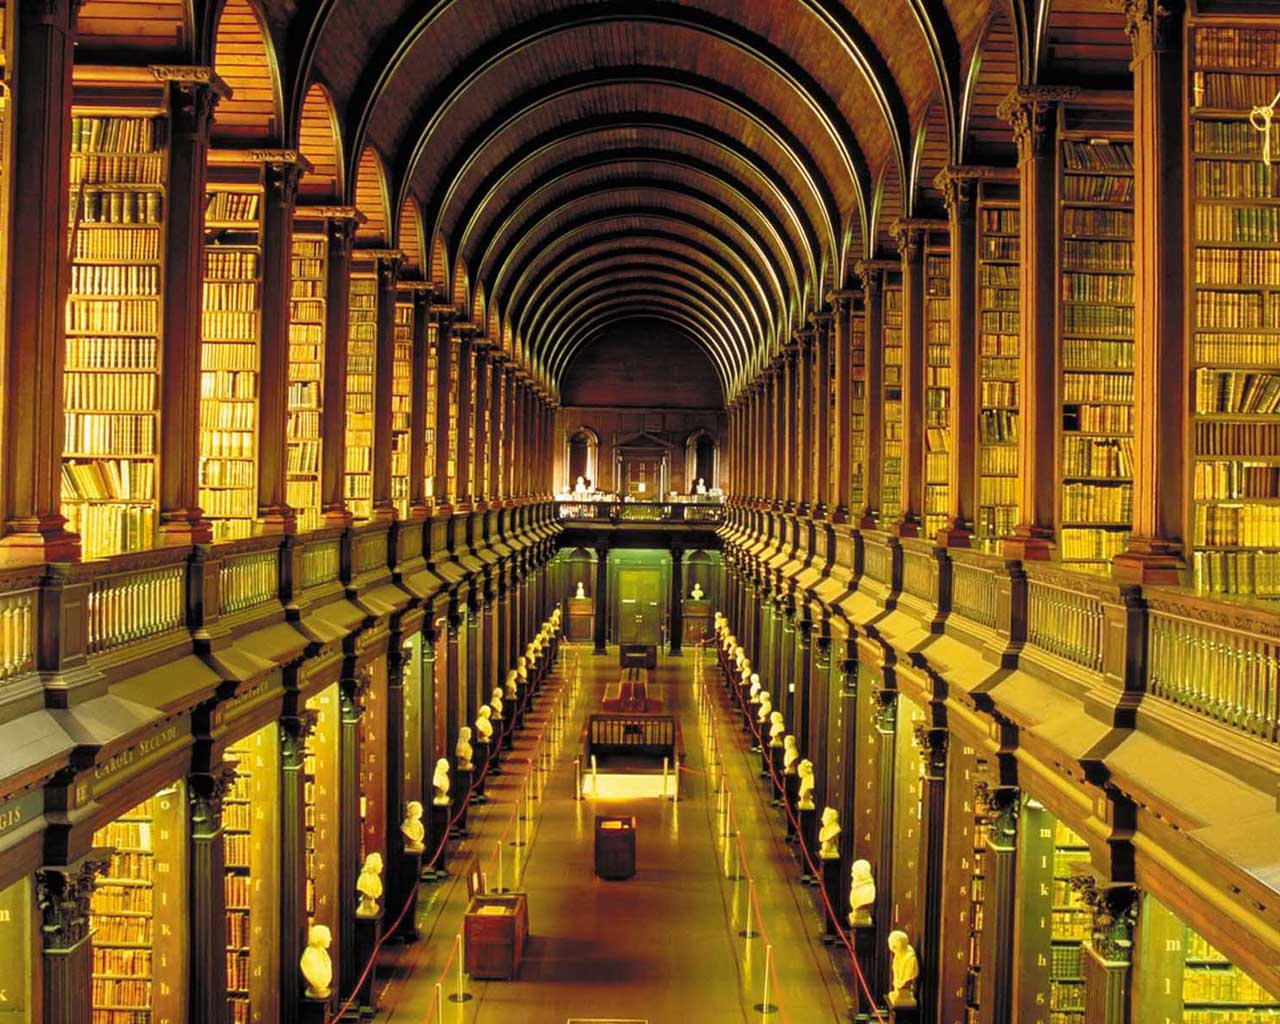 Free Download Trinity College Library 1280x1024 Wallpapers